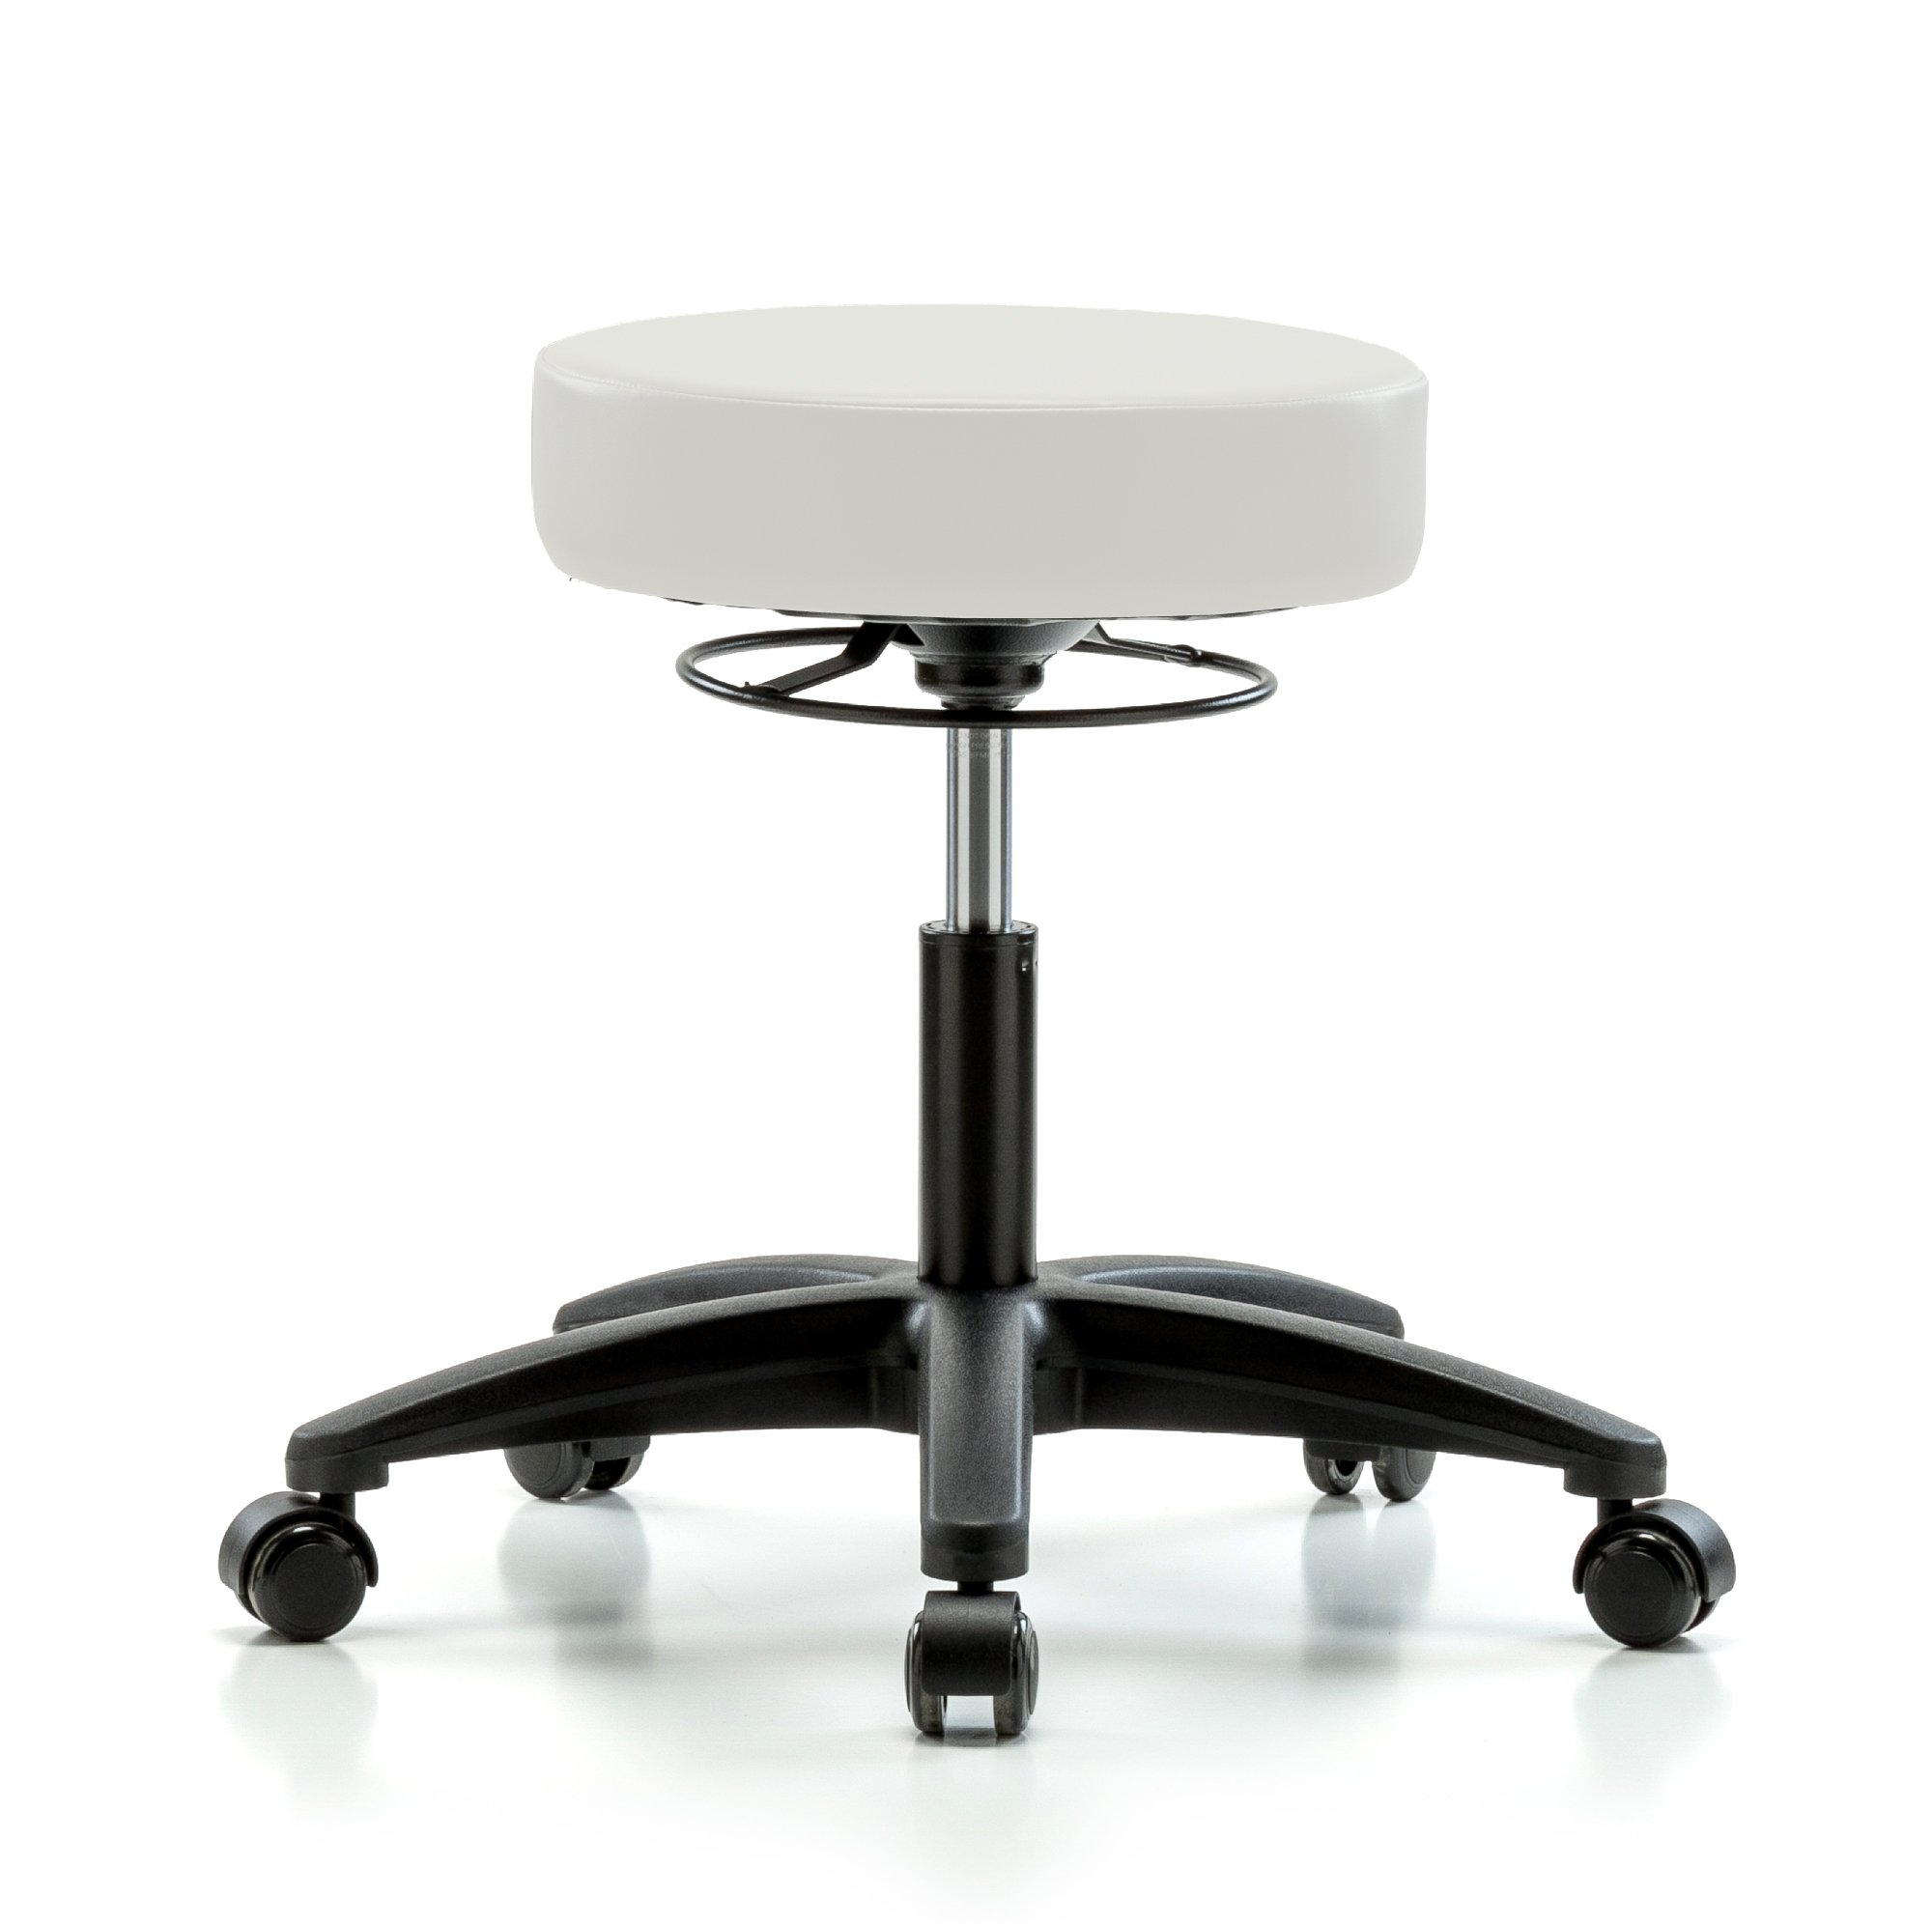 Perch Life Rolling Height Adjustable Stool For Lab Medical Office Spa Salon Kitchen Garage 20.5'' - 28'' (Hard Floor Casters/Adobe White Vinyl)